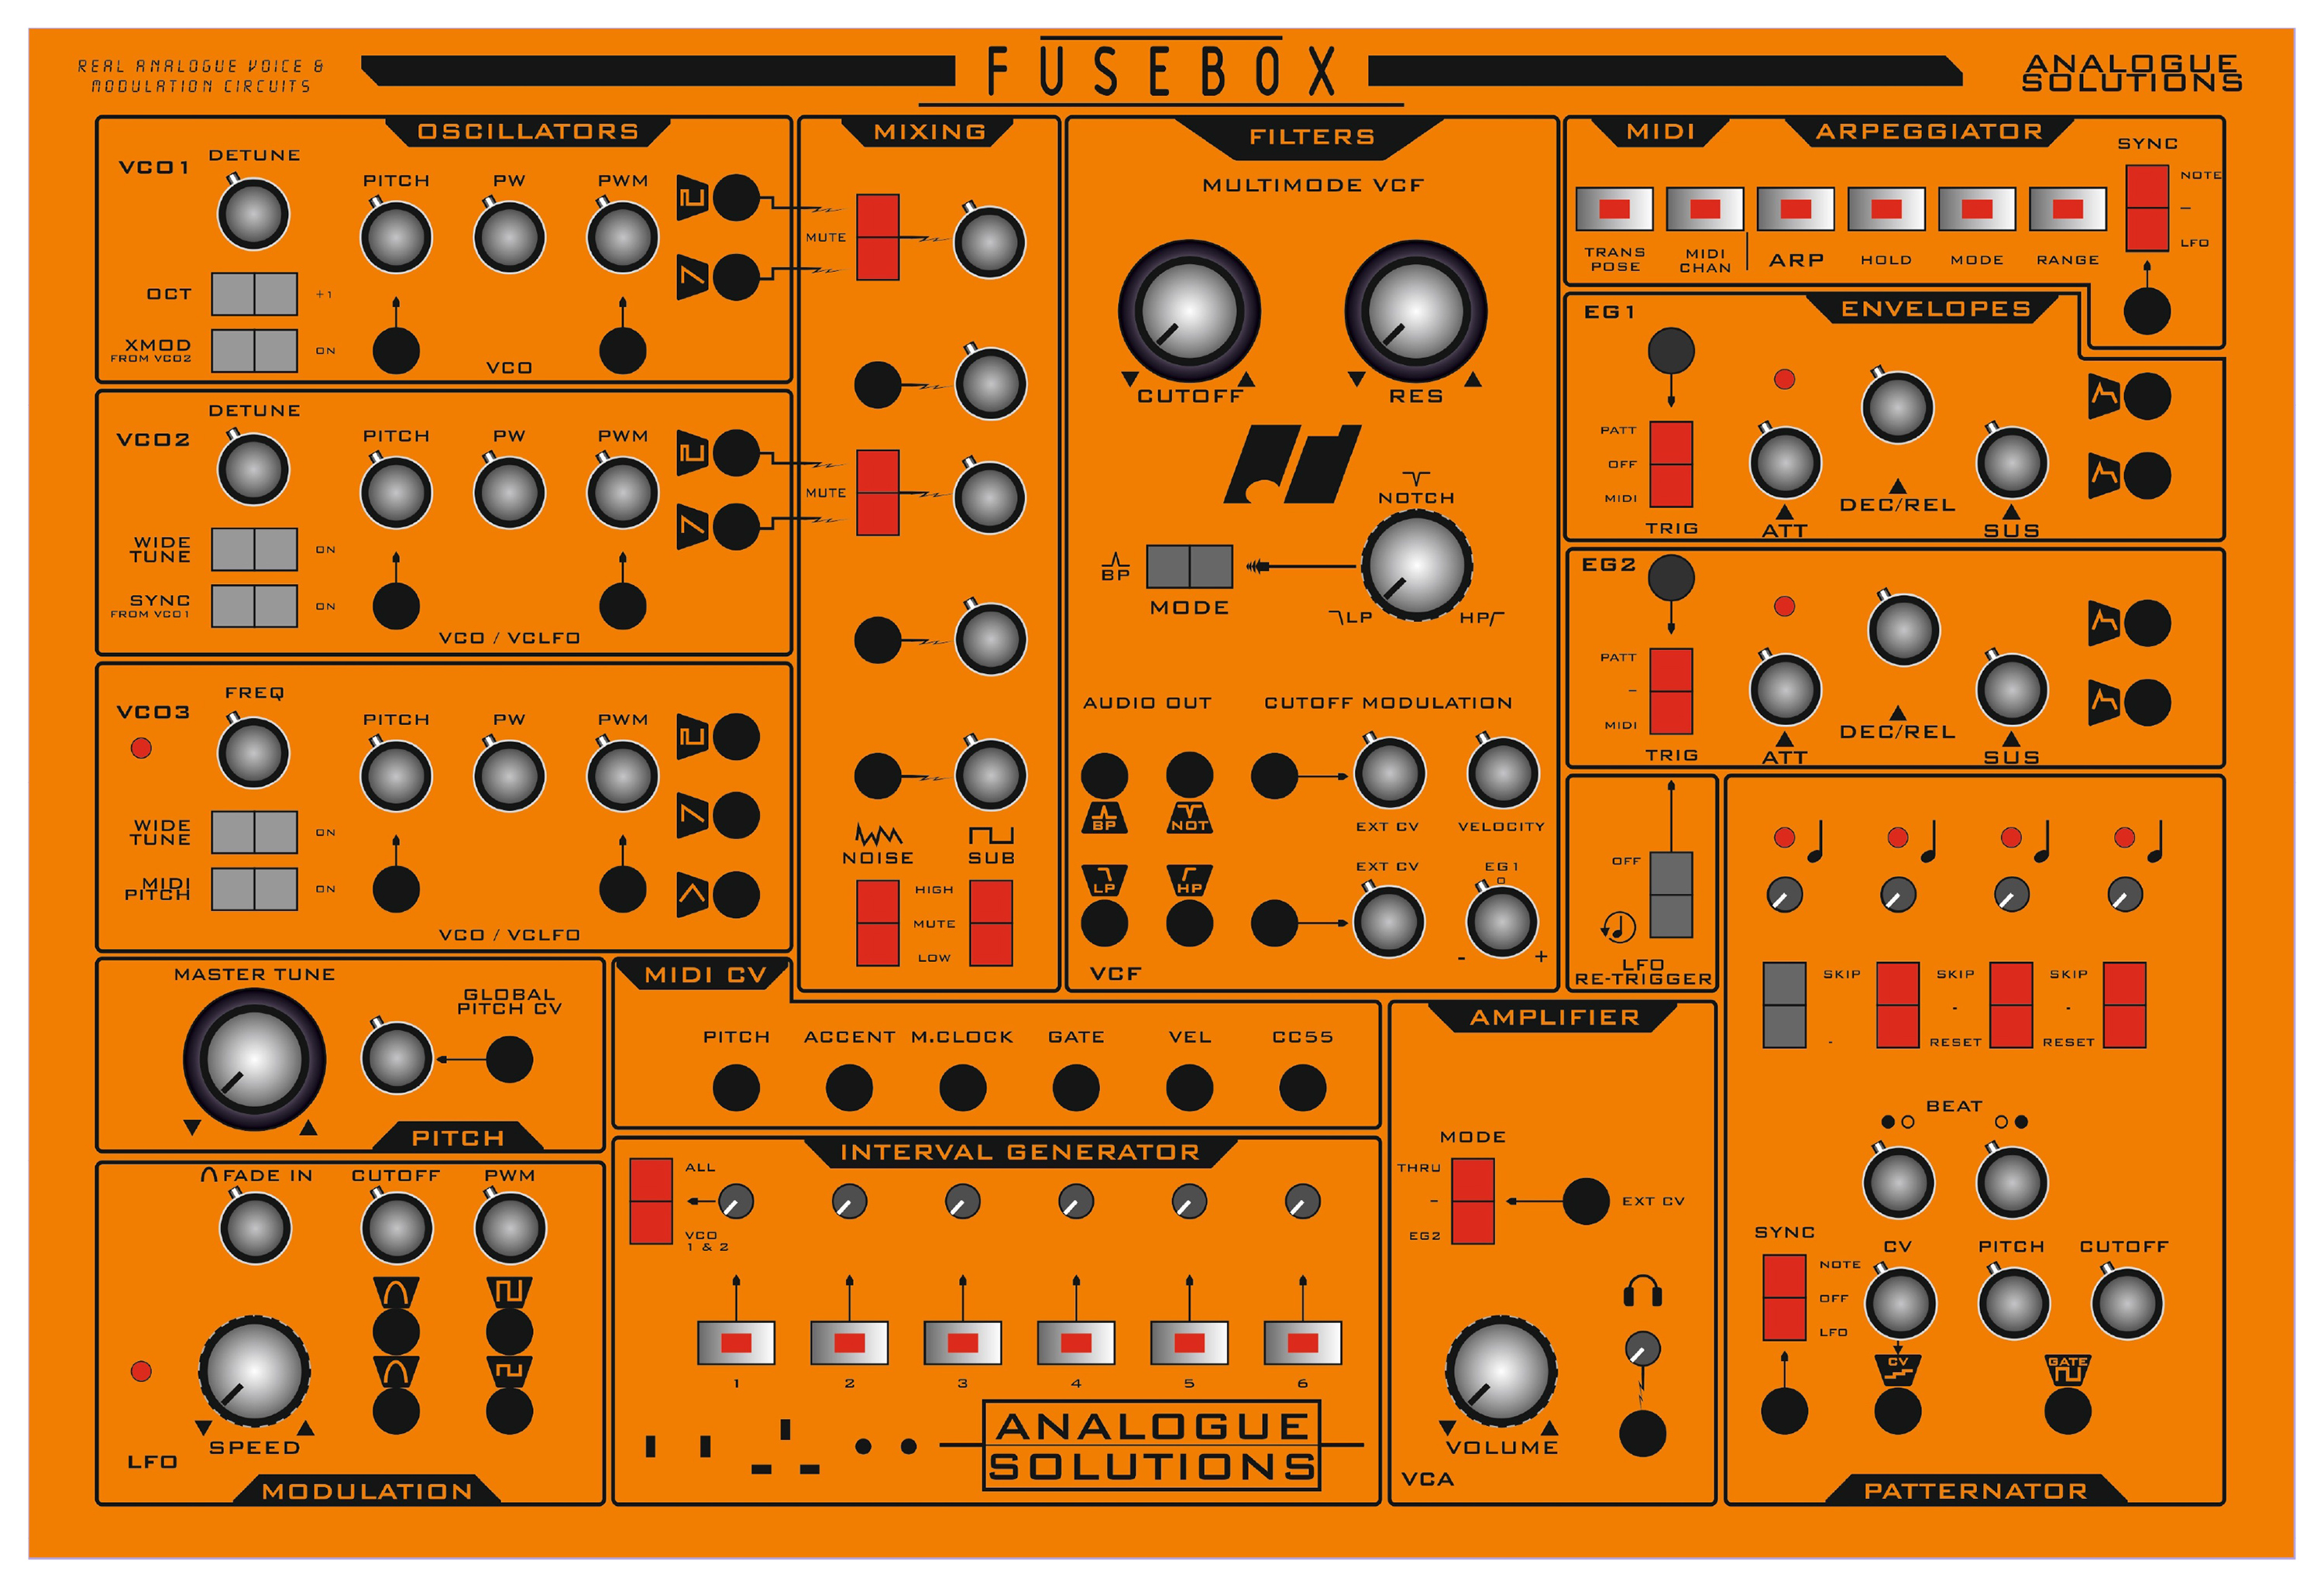 Fusebox A 3 Vco Synth By Analogue Solutions Greatsynthesizers Audio Fuse Box Open Download Panel Graphic